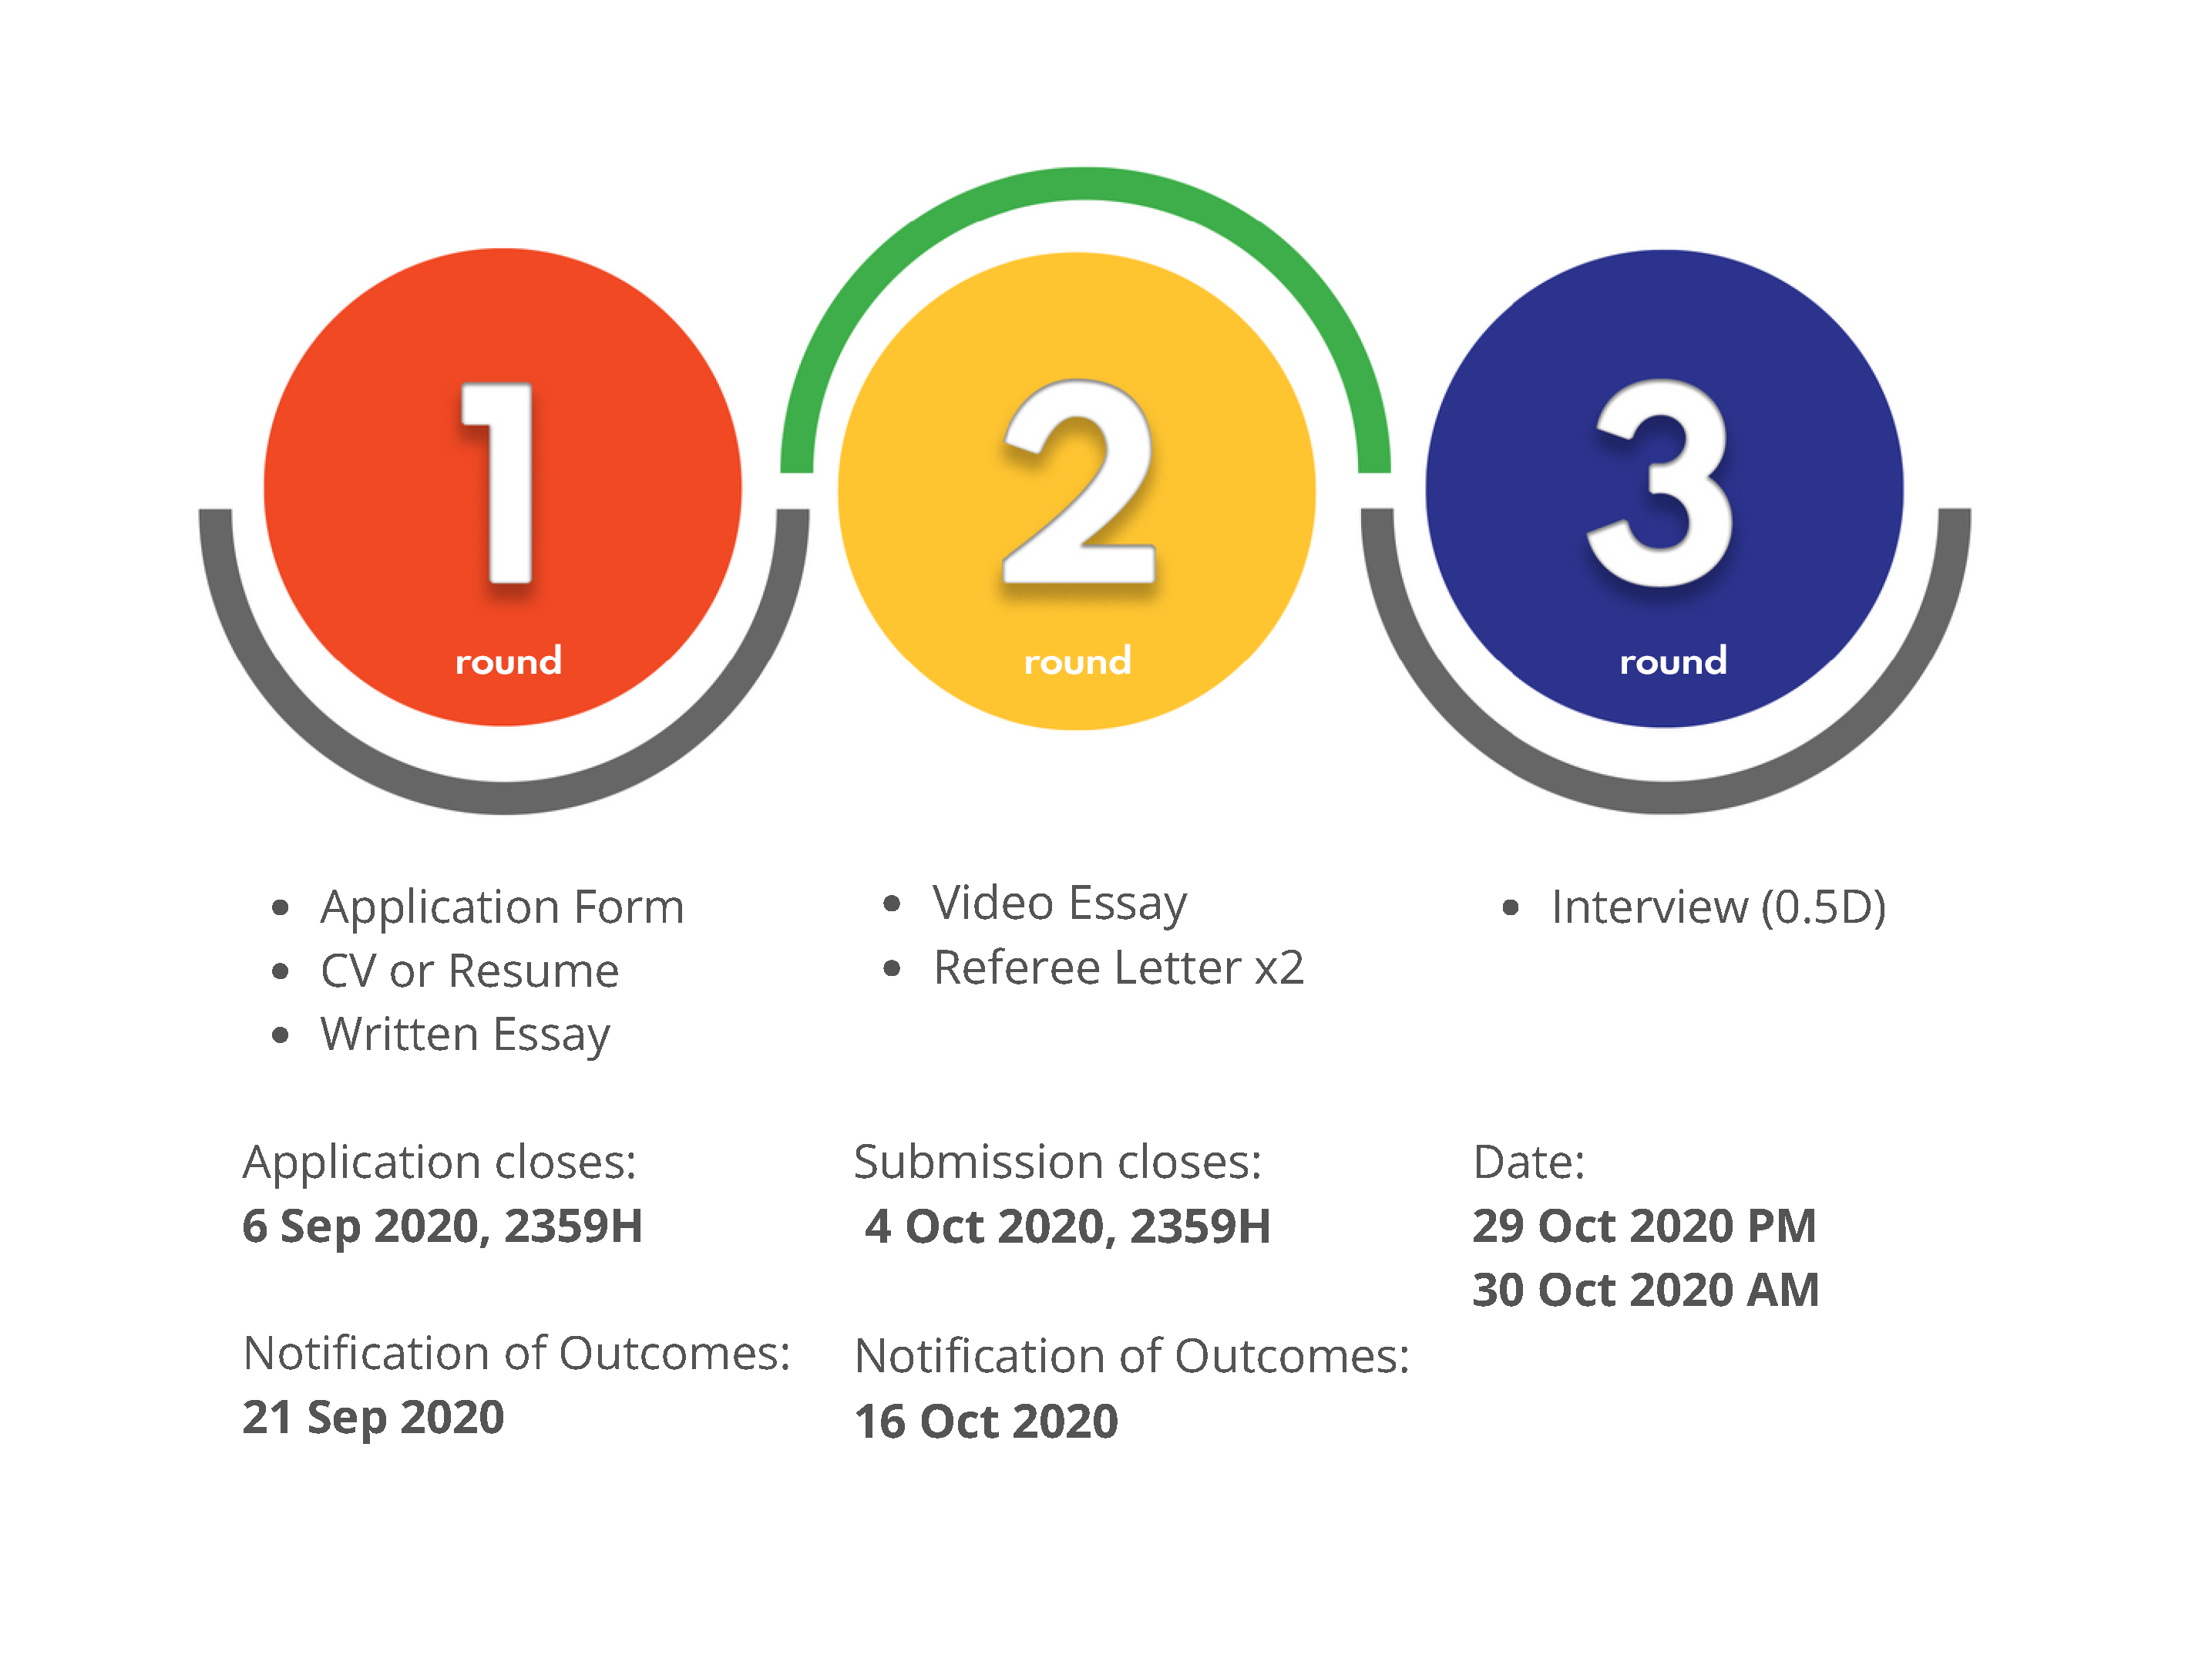 D_Current Stage of Application Process